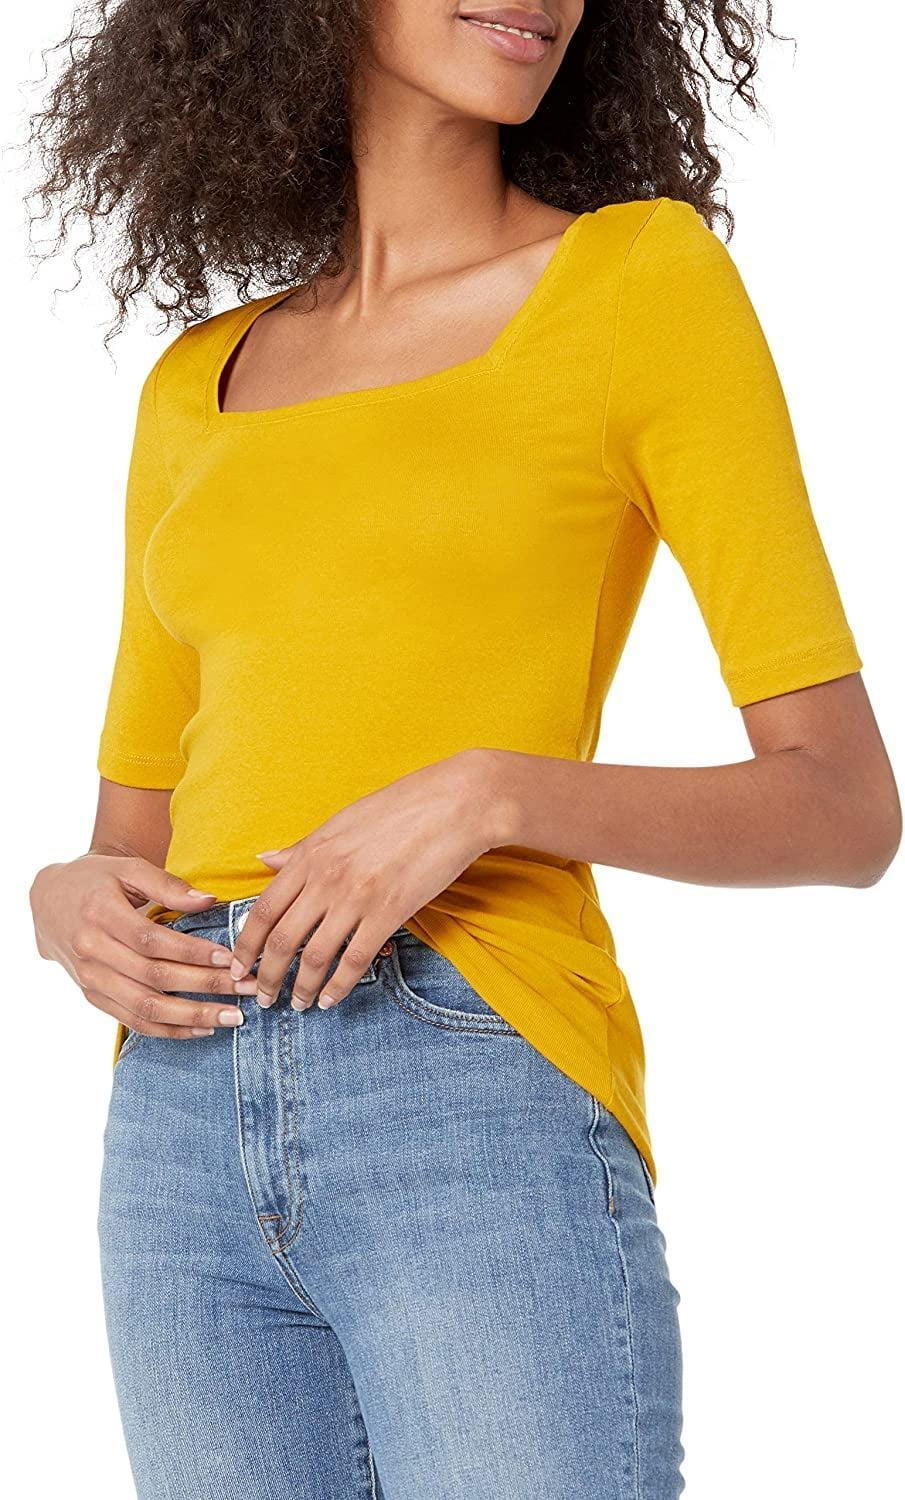 <p>This <span>Amazon Essentials Square-Neck T-Shirt</span> ($17) will quickly become your favorite, thanks to the flattering silhouette and stretchy fabric. It's a colorful pick you'll turn to over and over again.</p>